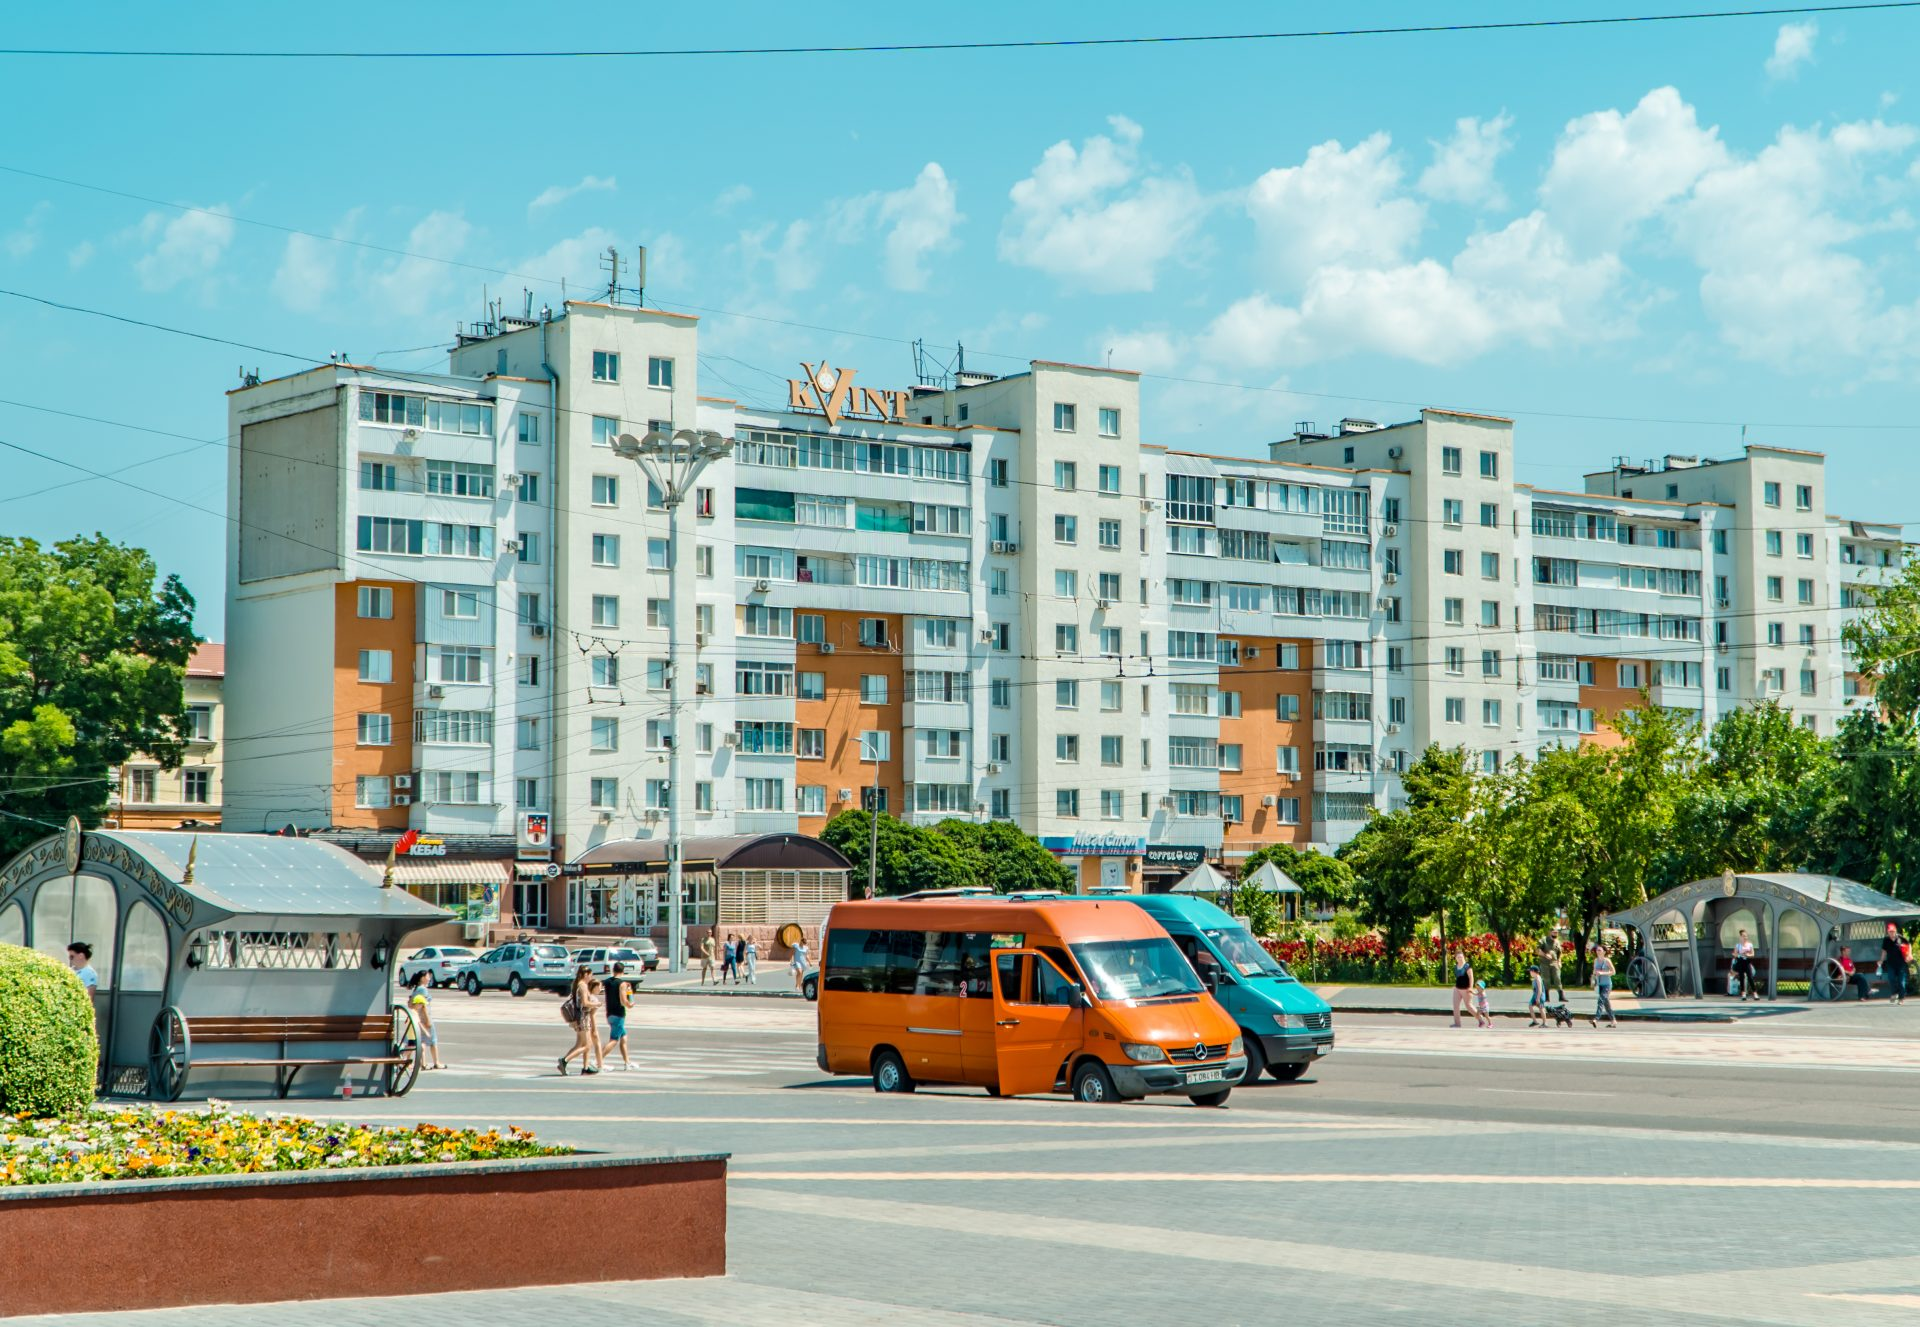 Soviet-style buildings and cars in the center of Tiraspol